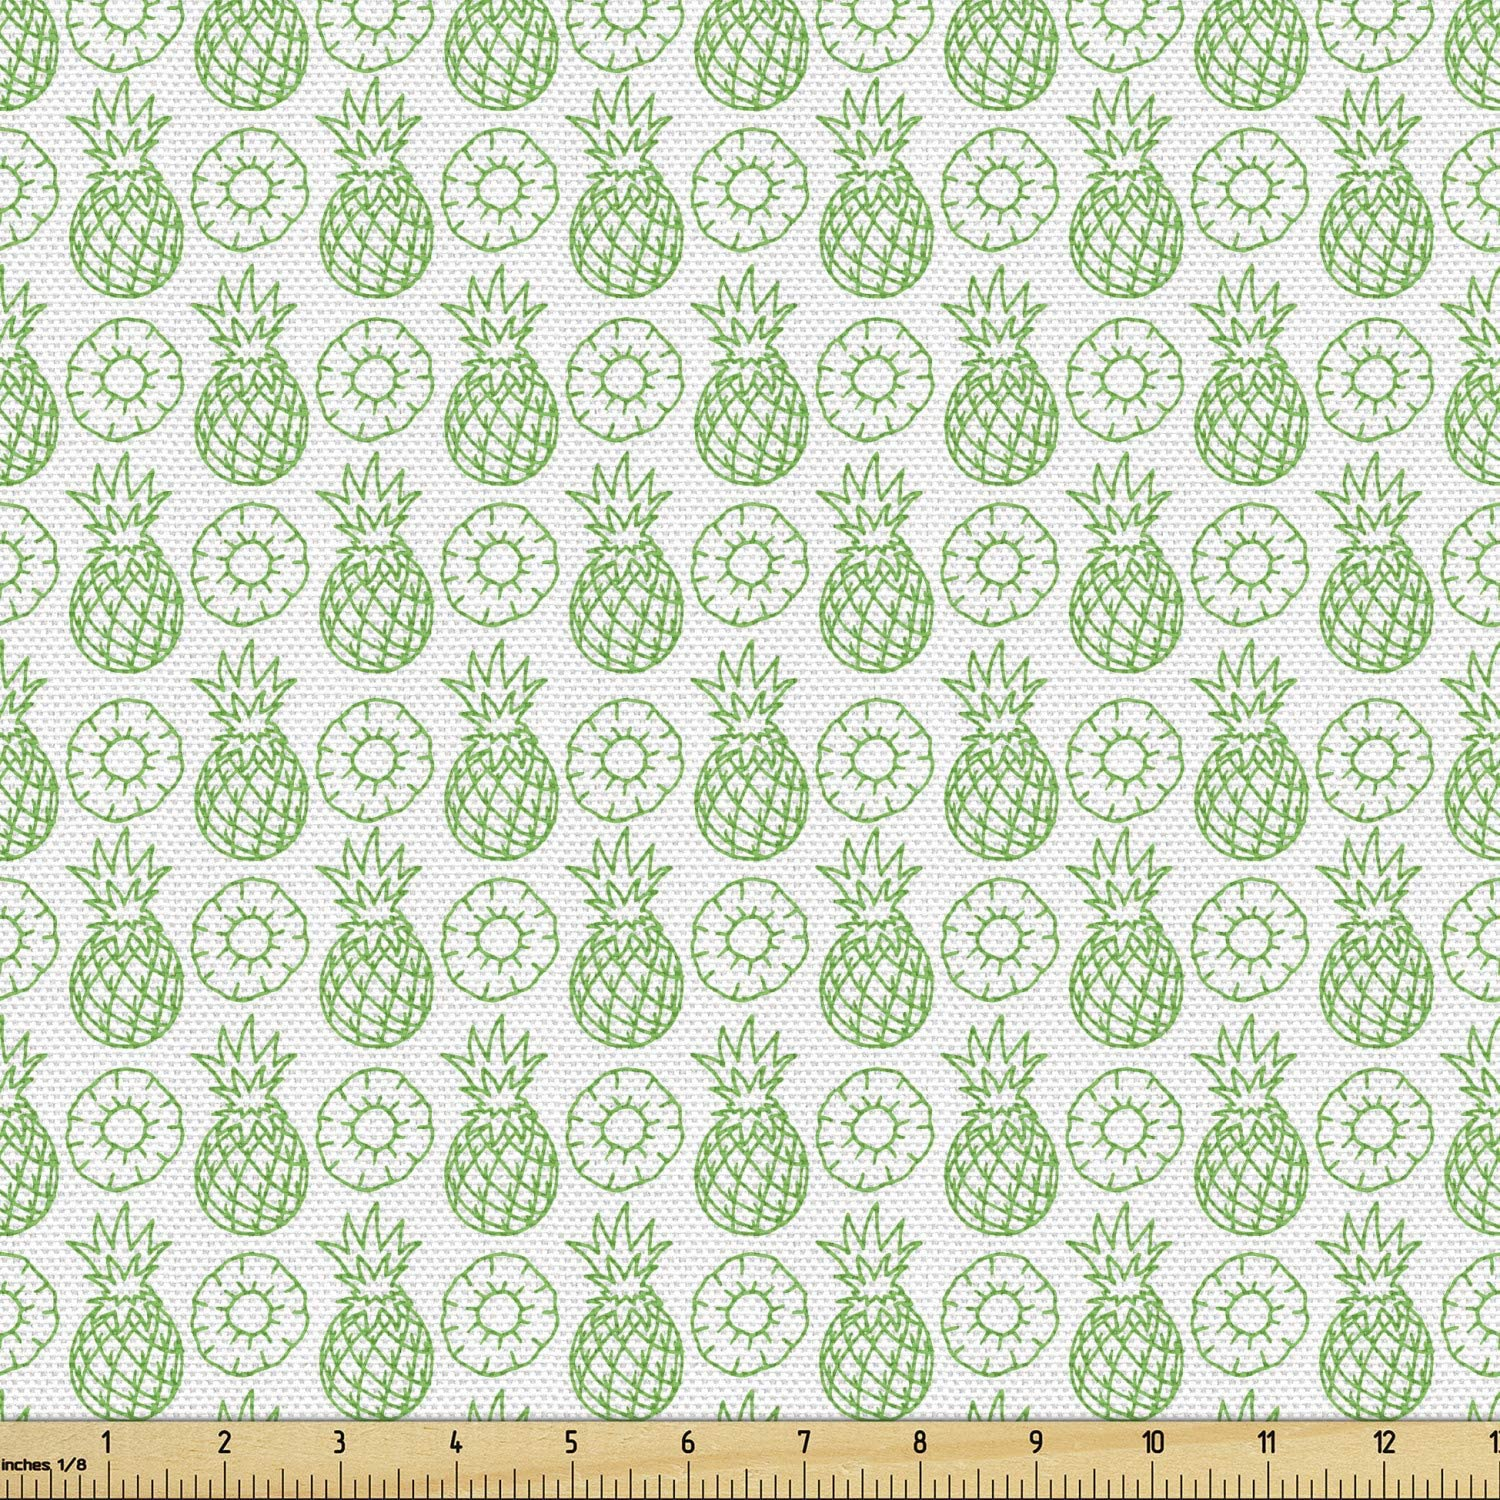 Lunarable Pineapple Fabric by The Yard, Classic Pattern with Pineapple Tasty Ingredient Freshness Monochrome Print, Decorative Fabric for Upholstery and Home Accents, 2 Yards, Lime Green